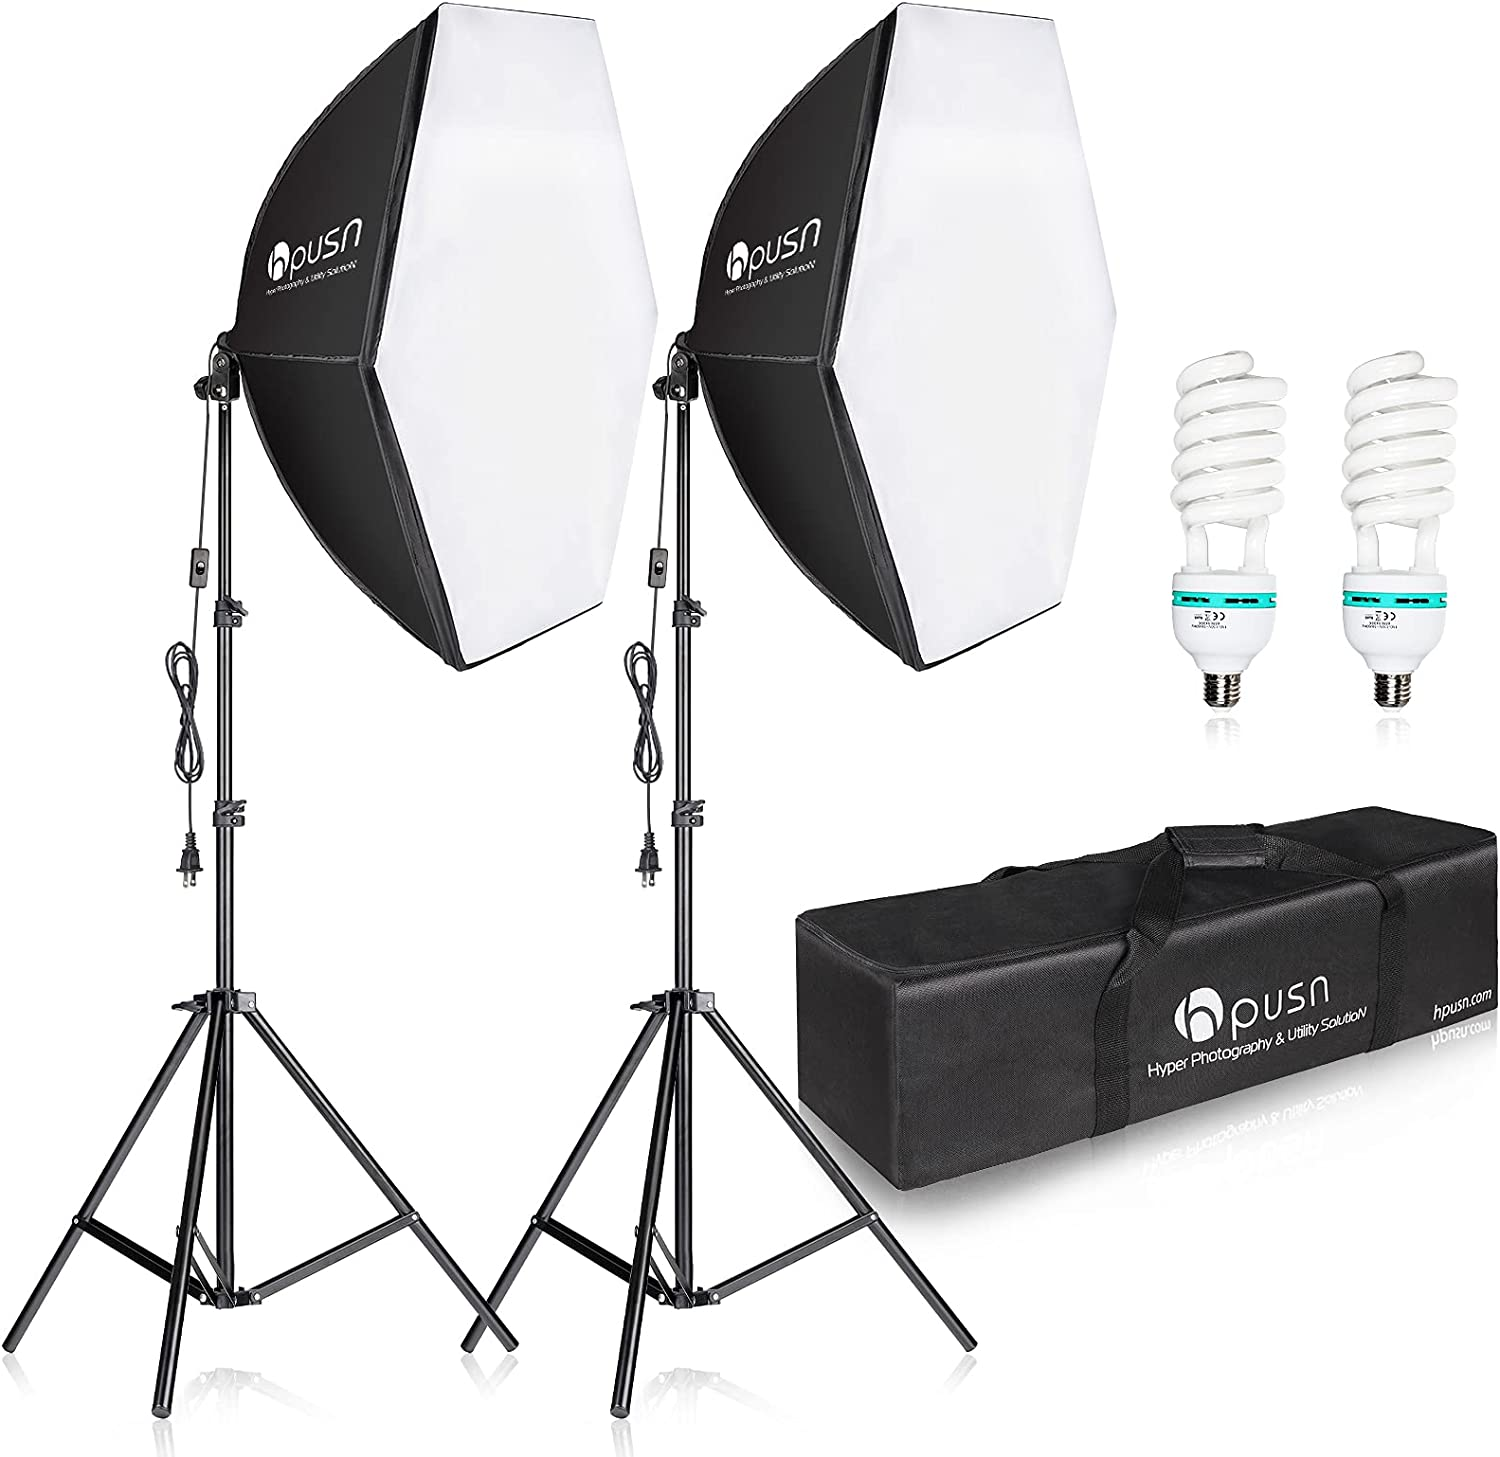 HPUSN Softbox Lighting Kit 2x76x76cm Photography Continuous Lighting System Photo Studio Equipment with 2pcs E27 Socket 85W 5400K Bulbs for Portrait Product Fashion Photography